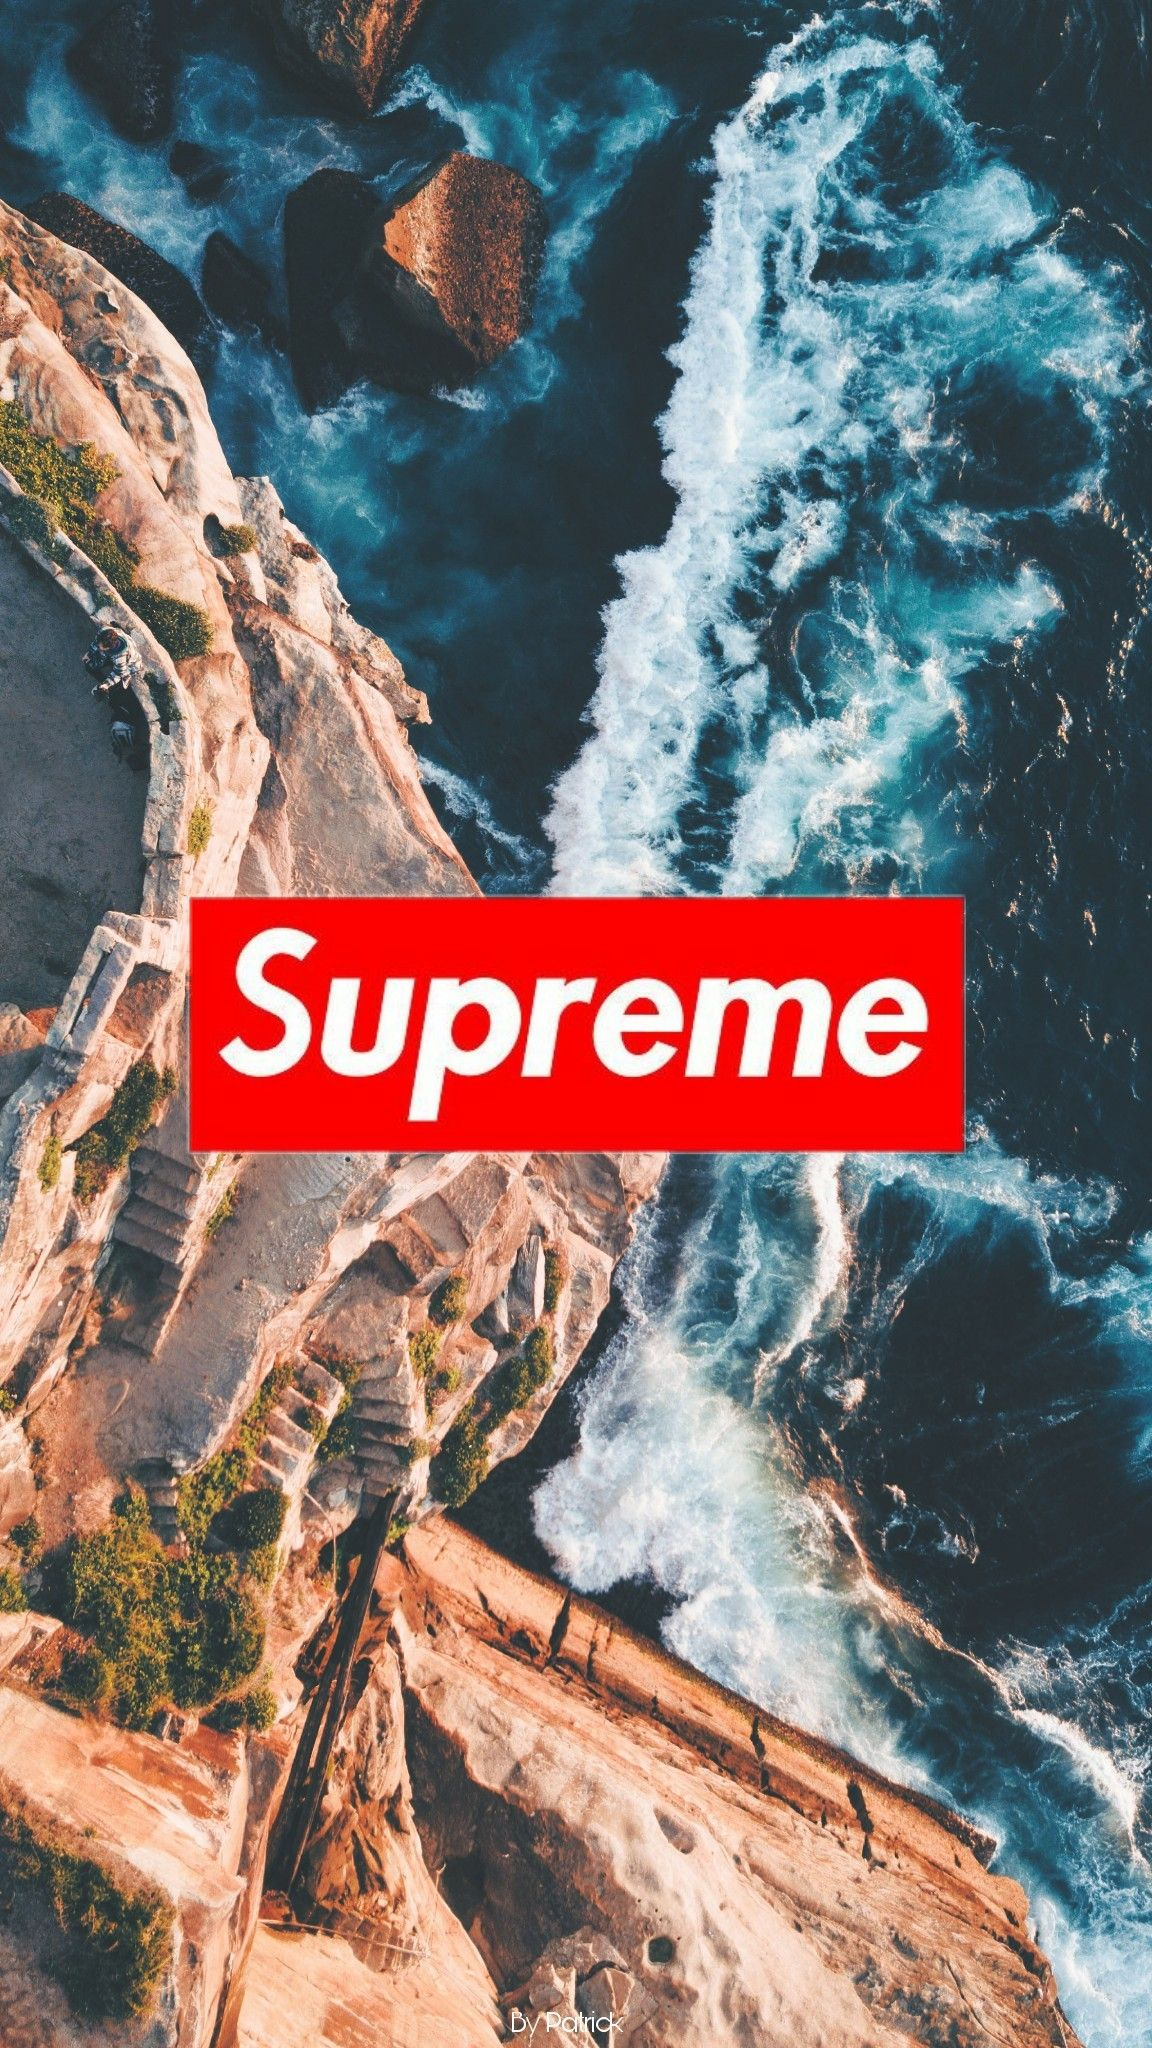 Pin by TKX101 on wallpapers   Supreme wallpaper, Android ...